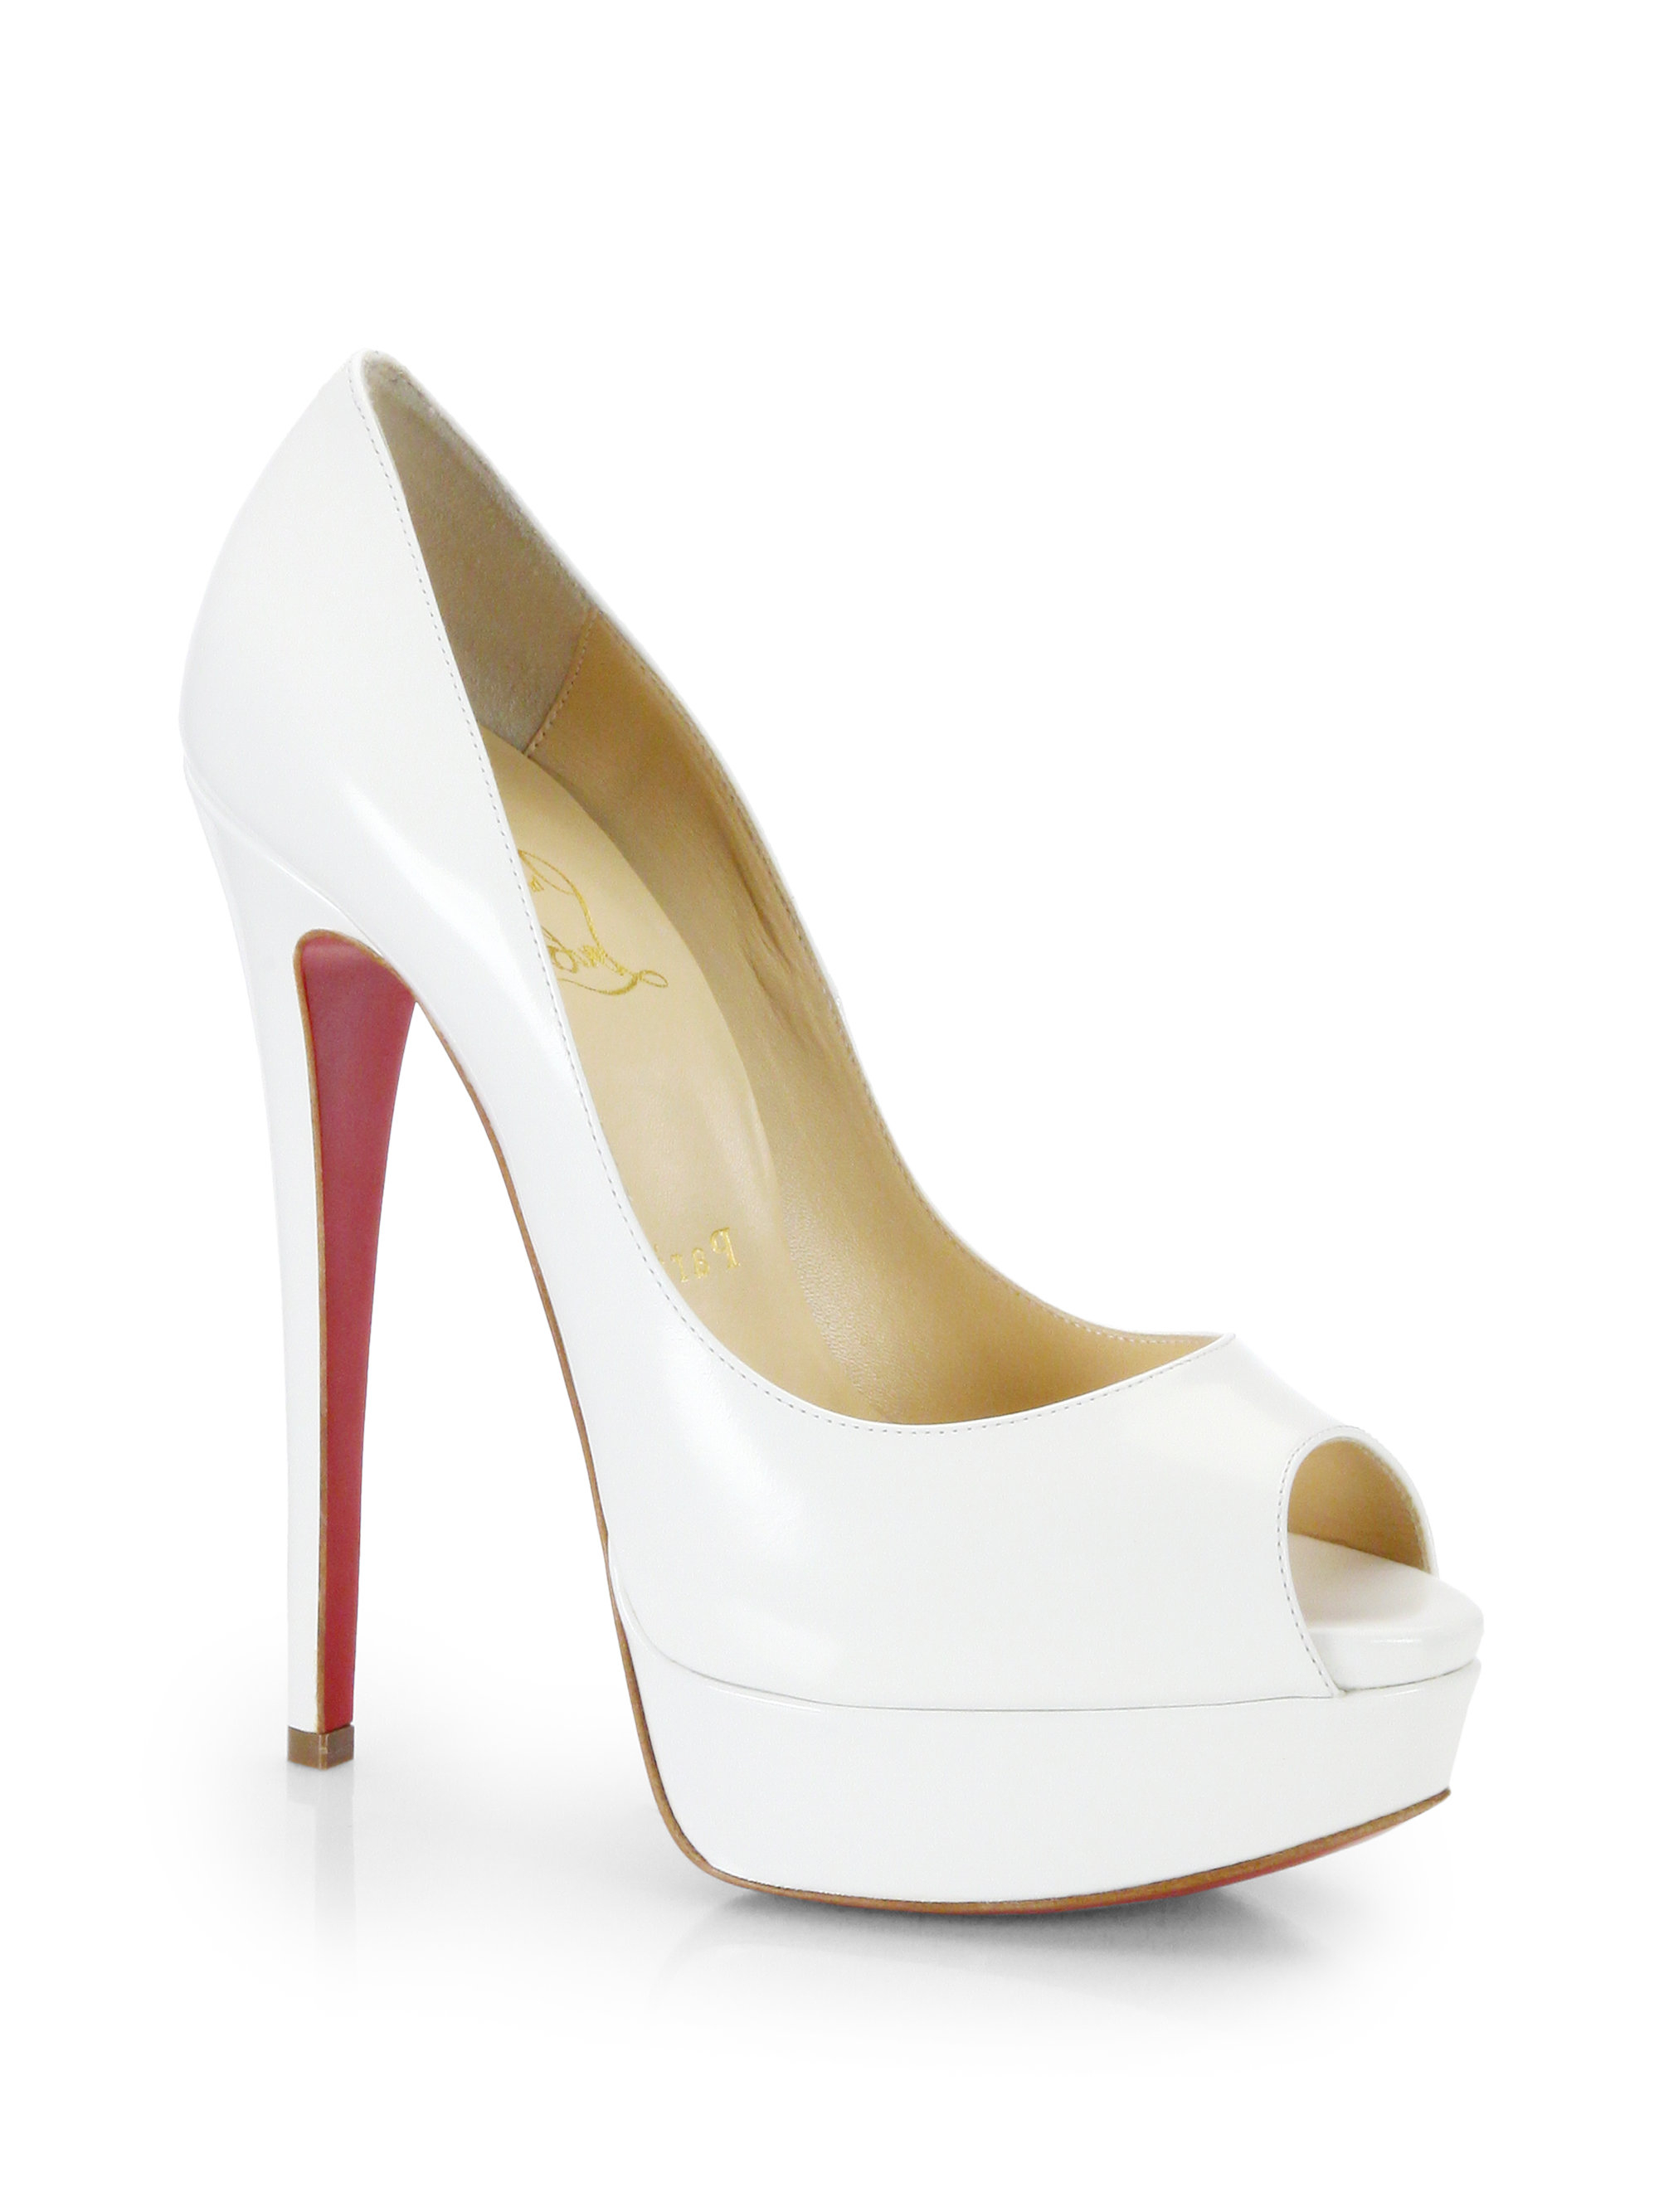 853d091dc2 ... usa lyst christian louboutin lady peep leather pumps in white 5bba2  80525